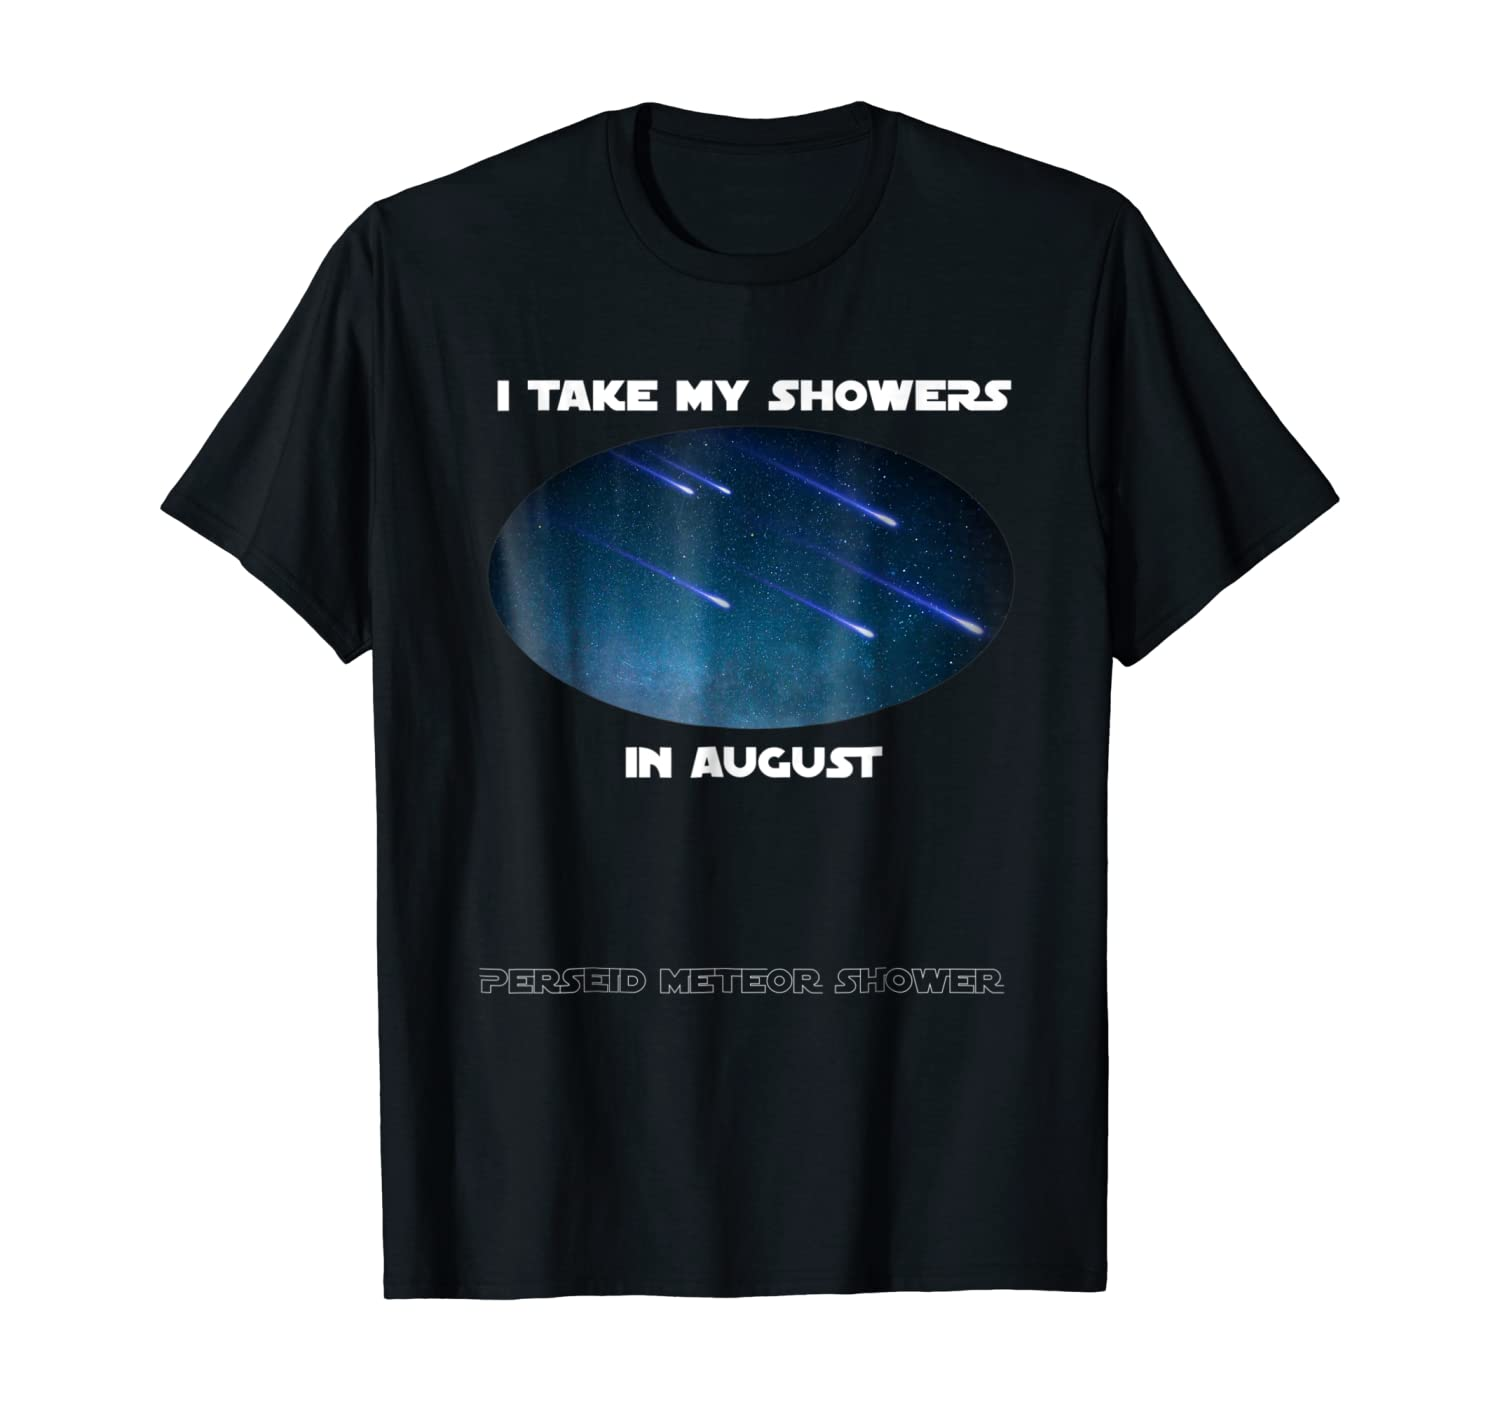 Funny Perseid Meteor Shower Shirt - Perseids T-Shirt